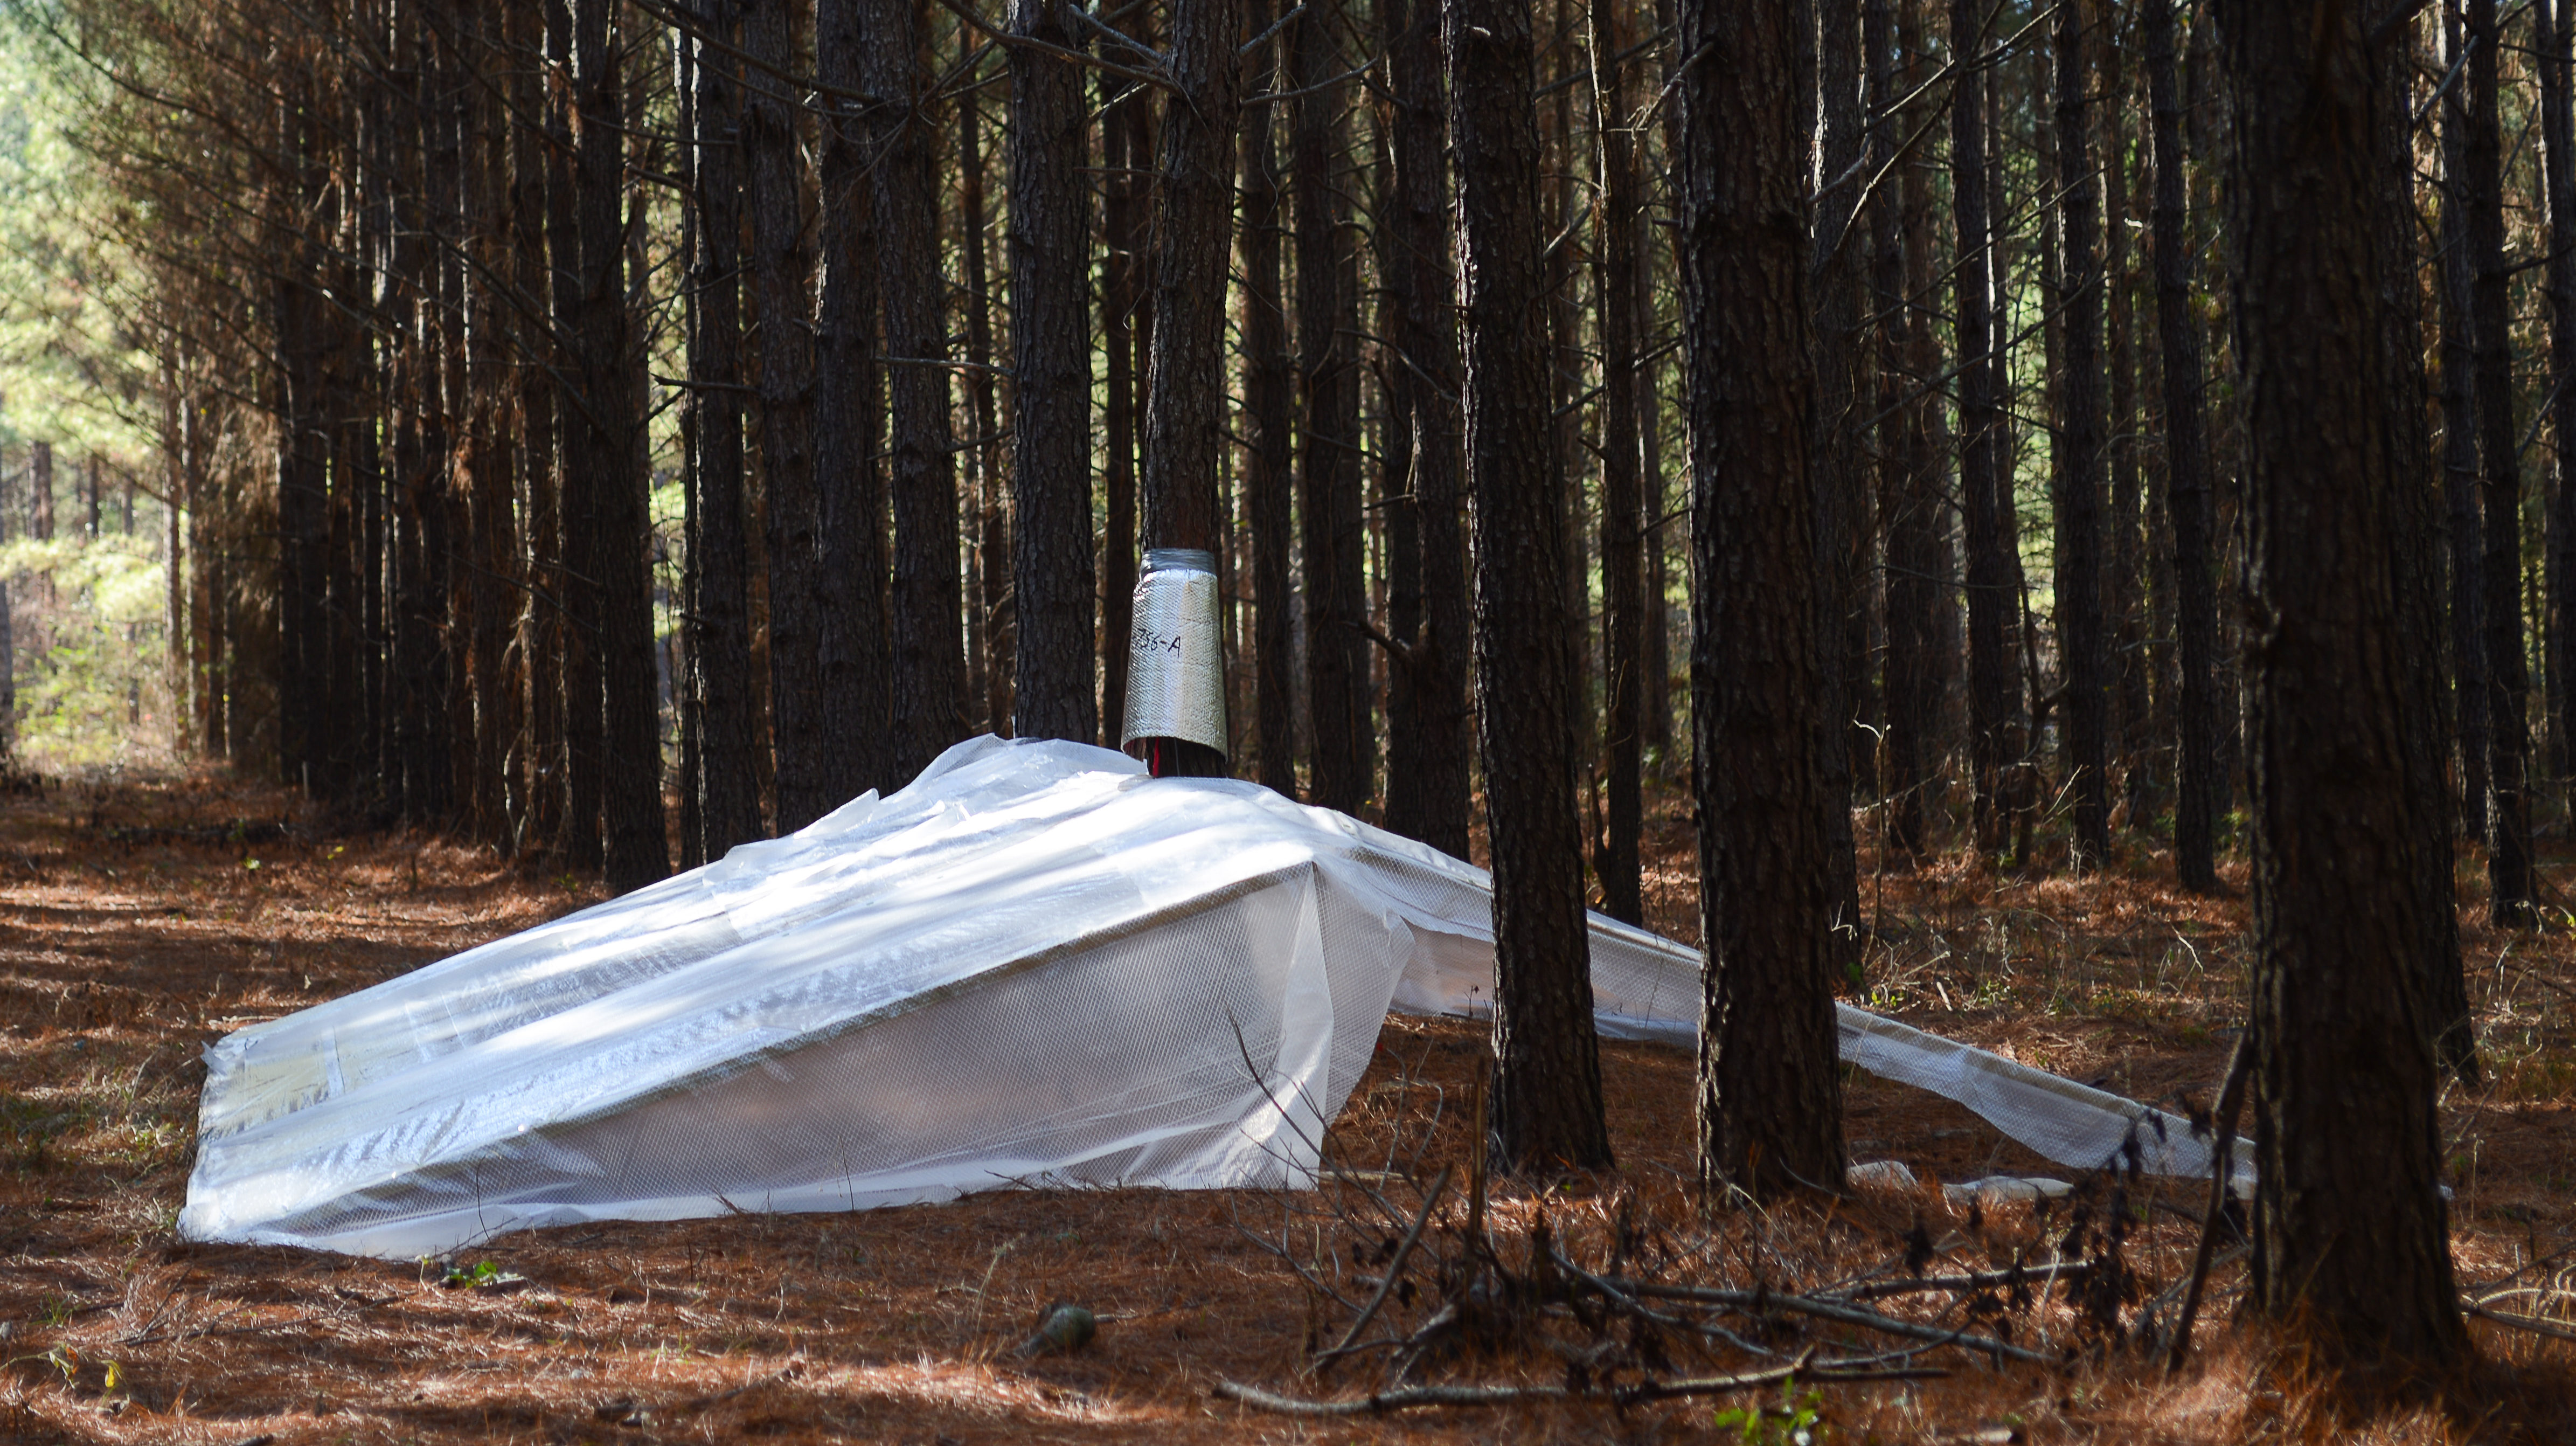 plastic shelter in forest.jpg thumbnail